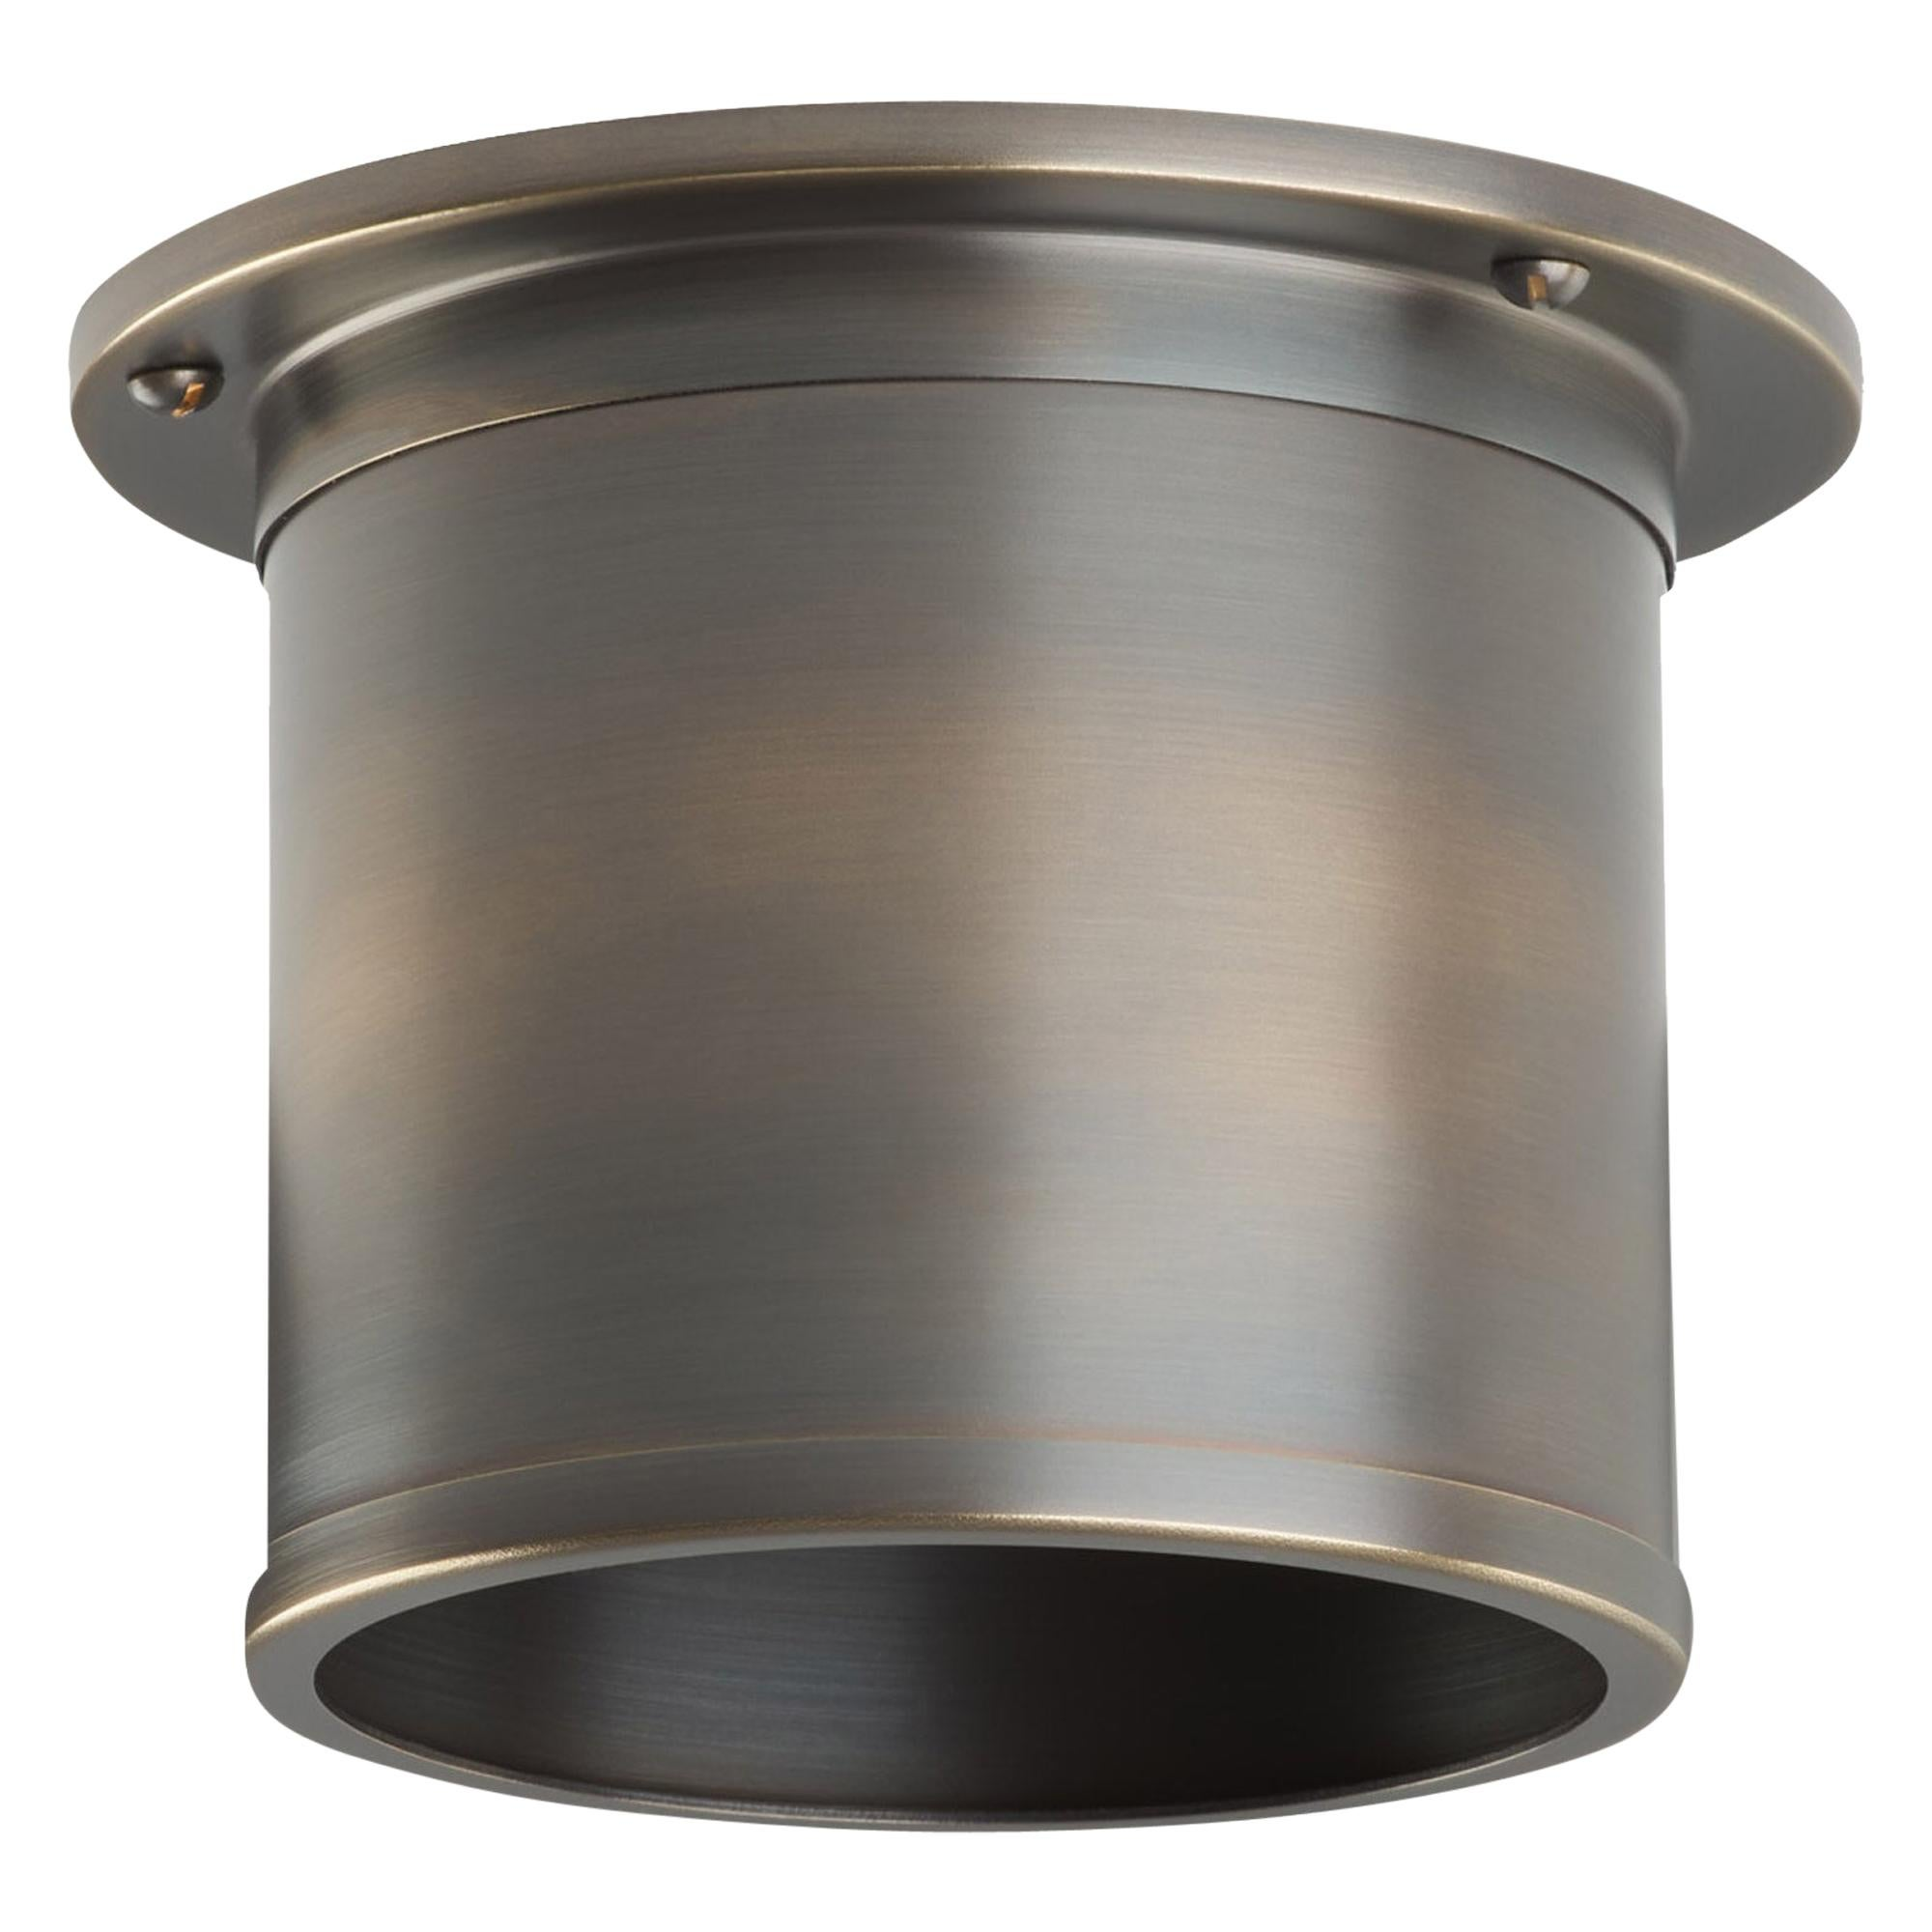 And Objects Compton Spot Diffuser, Brass Bronze Recessed Spot Light Shade